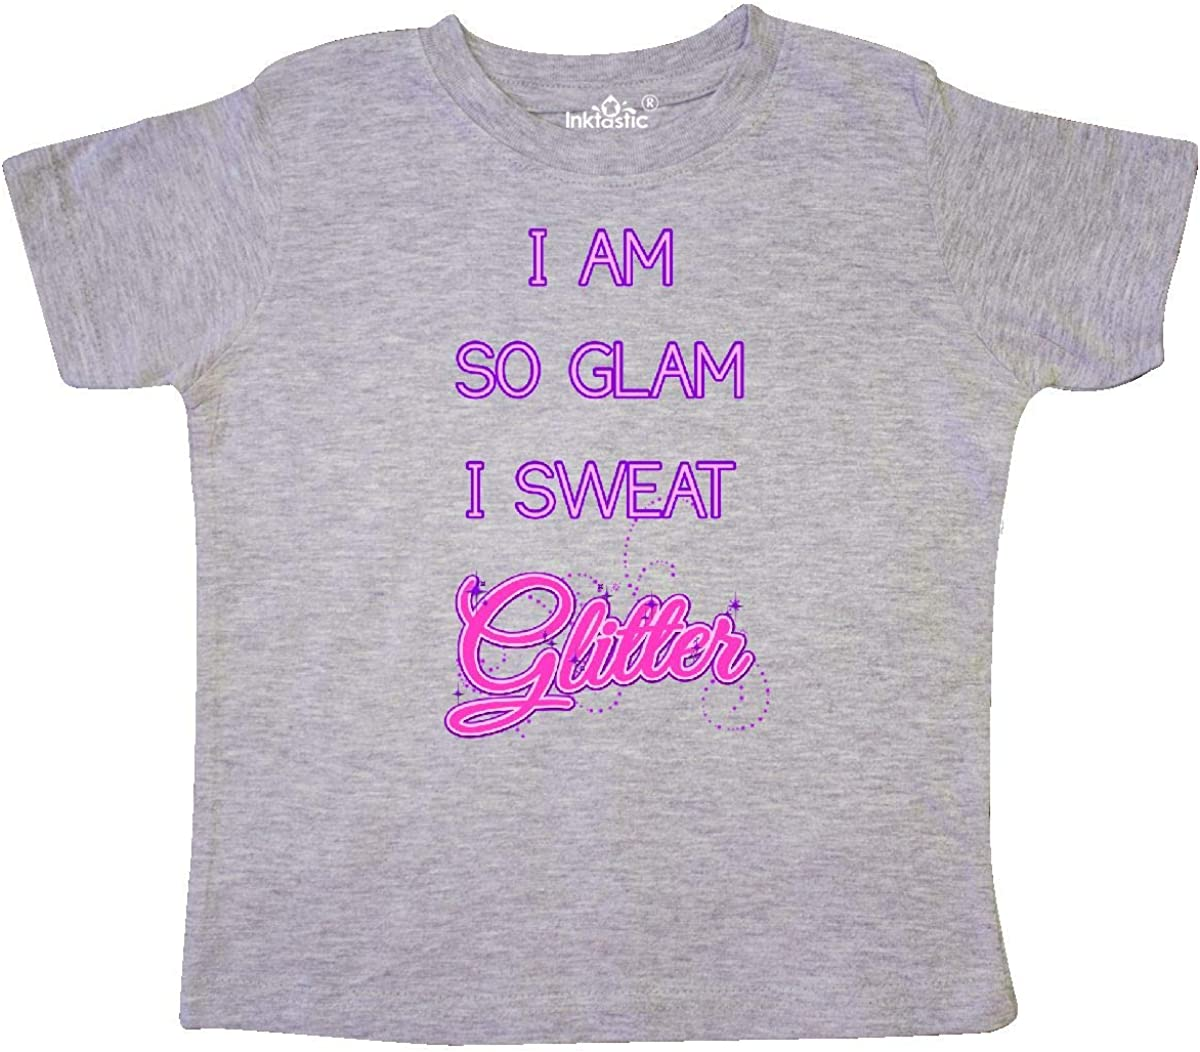 inktastic I Am So Glam I Sweat Glitter Toddler T-Shirt